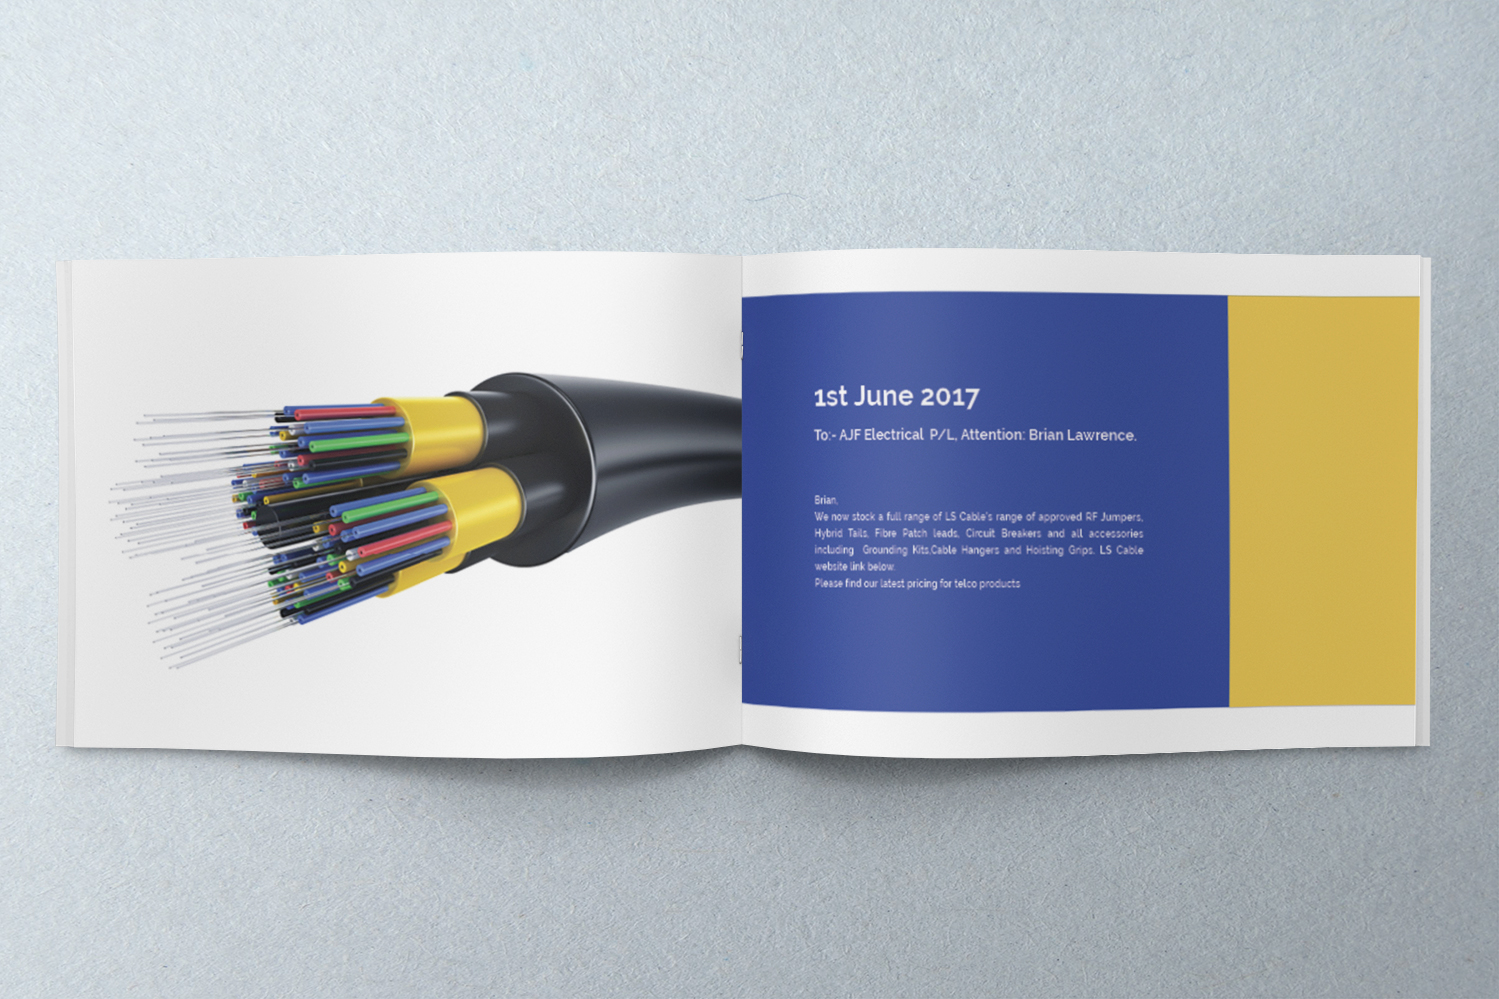 professional upmarket telecommunications catalogue design for a